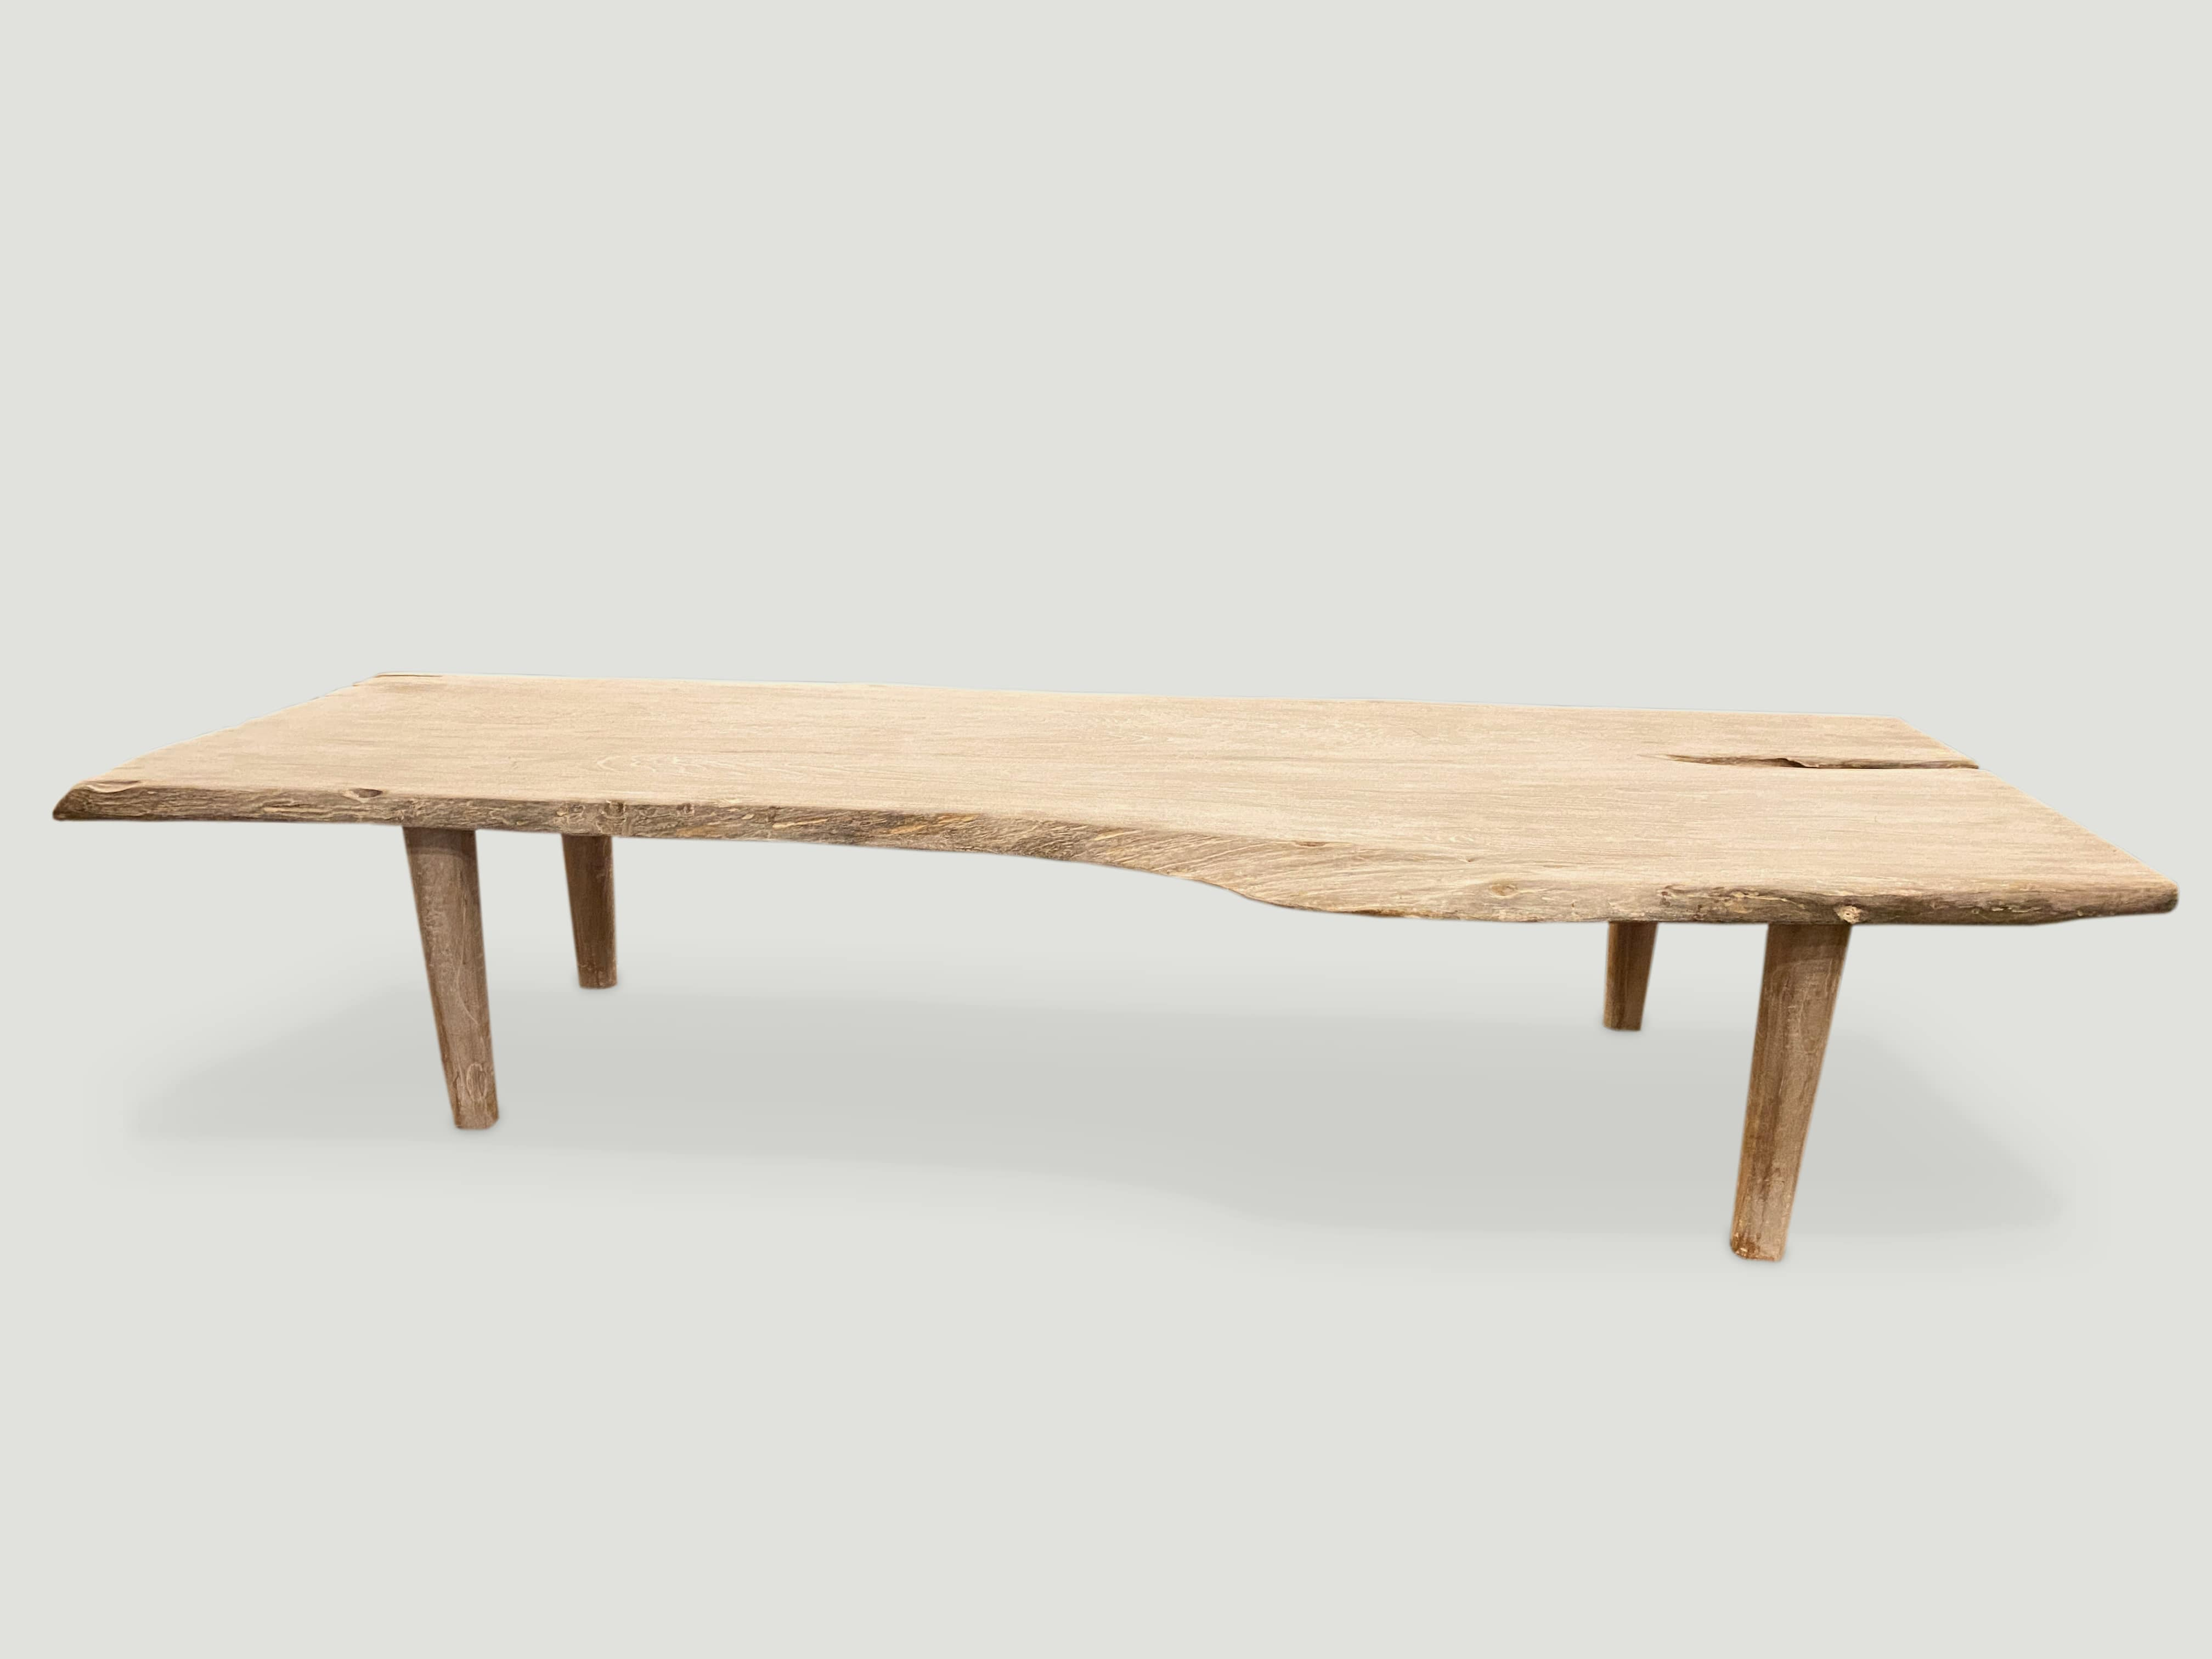 live edge teak coffee table or bench 8ml andrianna shamaris